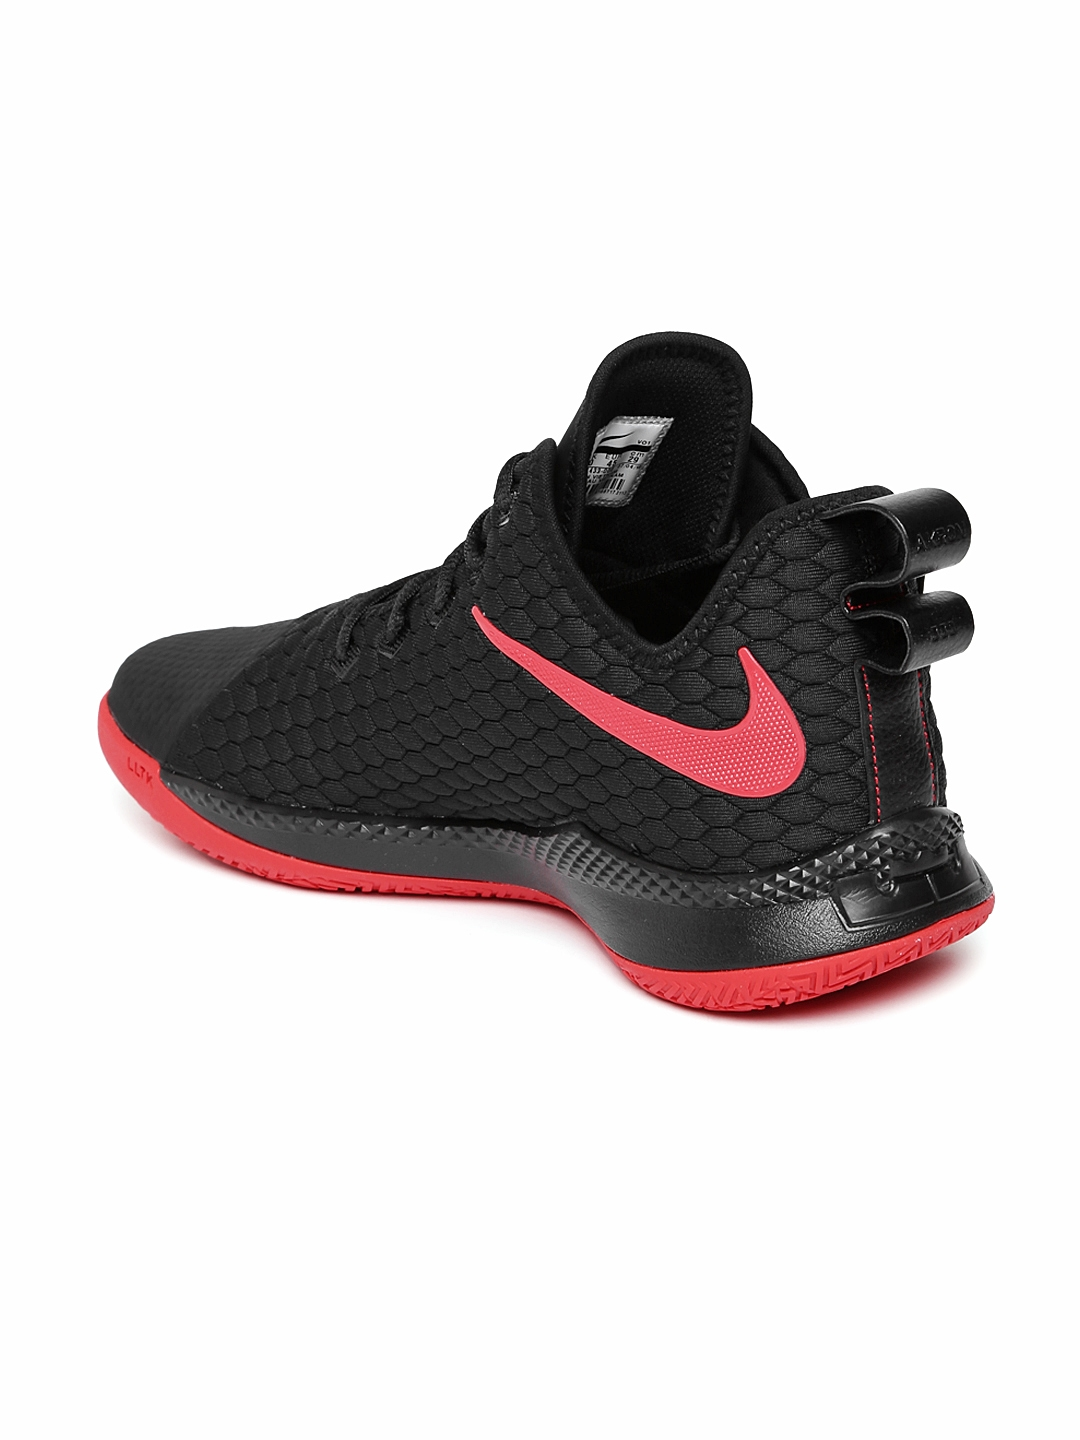 the latest 23fdf c0884 Nike Men Black Lebron Witness III Basketball Shoes